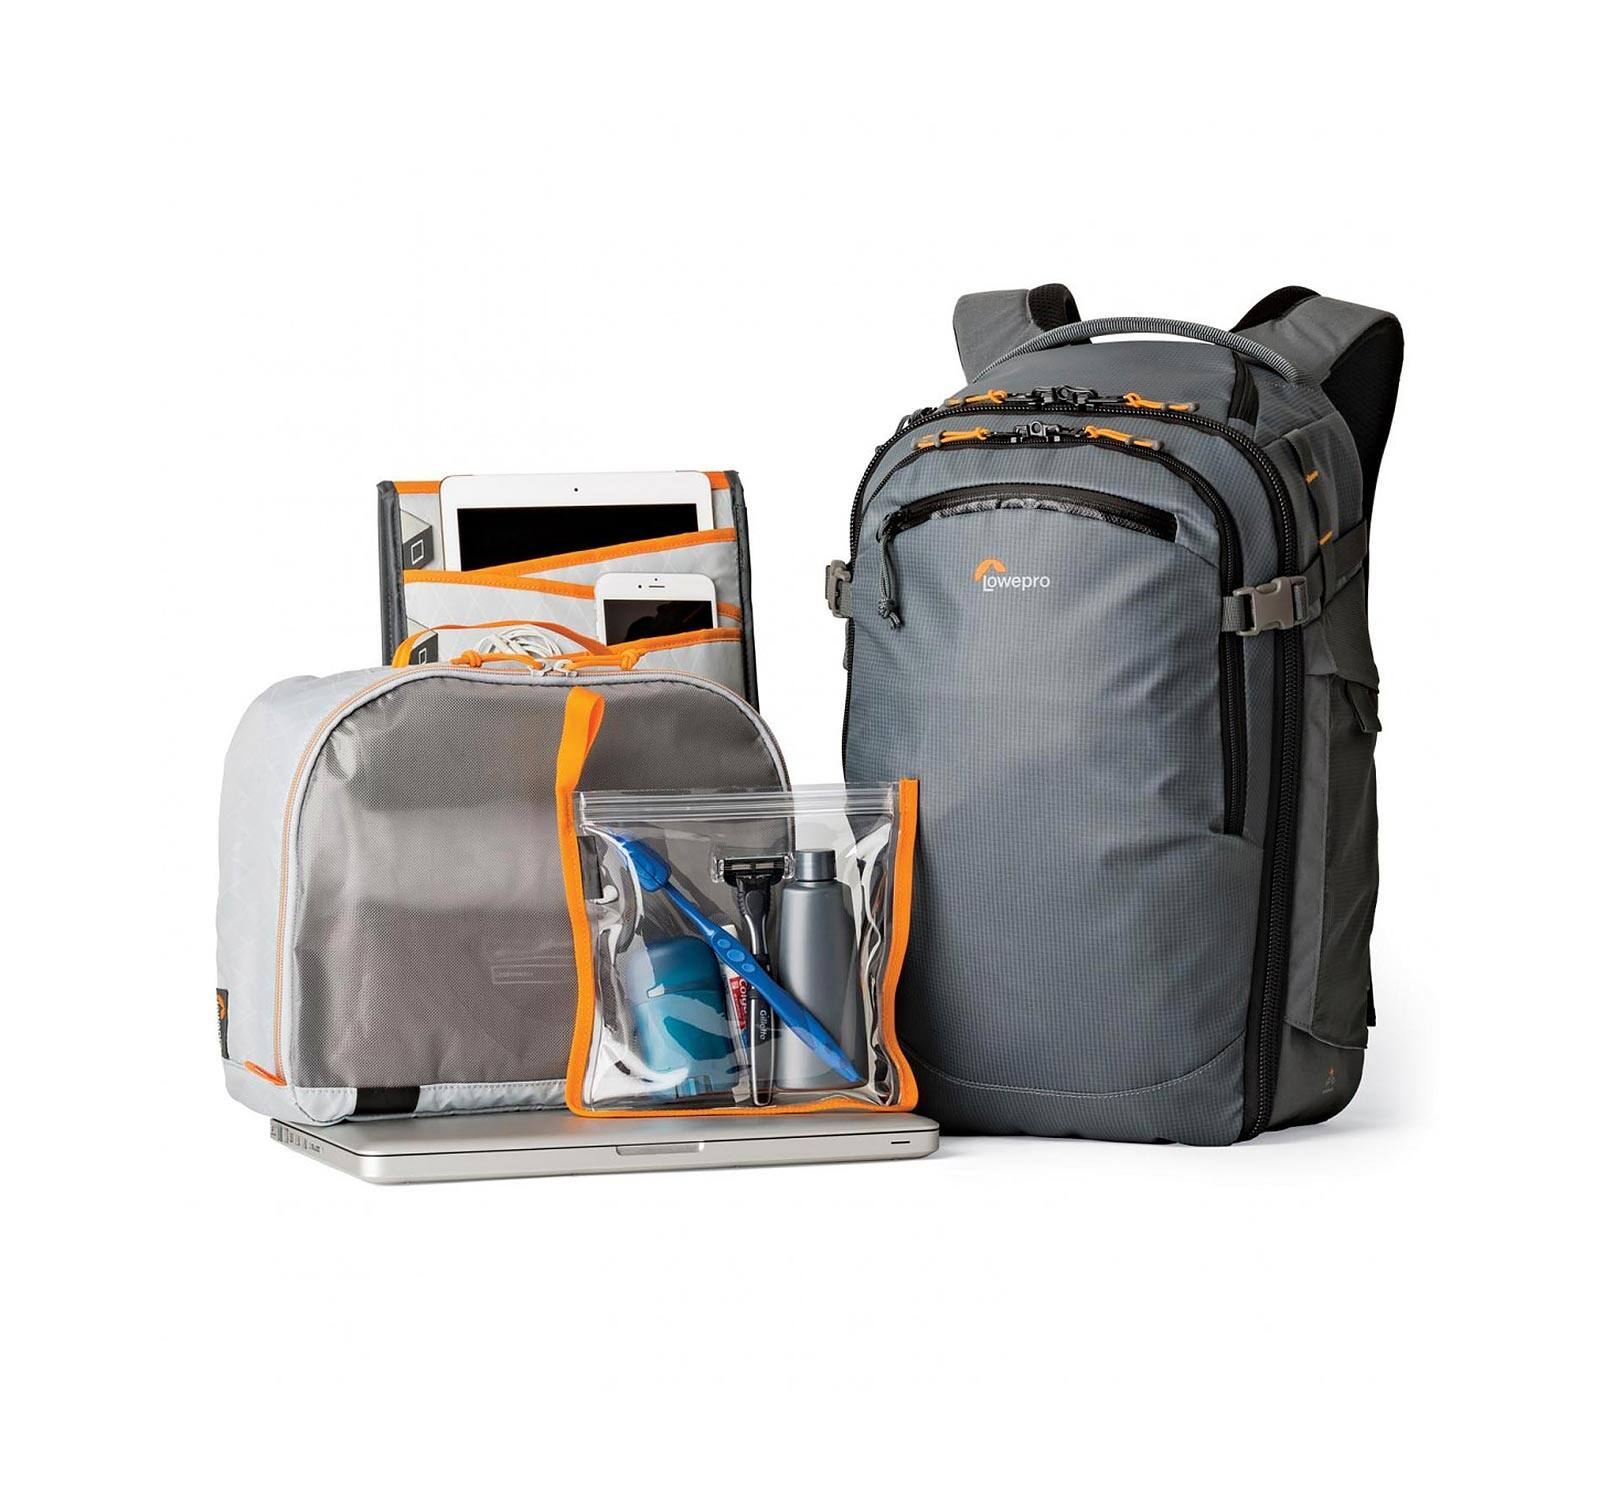 Lowepro HighLine BP 300 AW 22L Backpack (Gray) $49.95 + Free Shipping